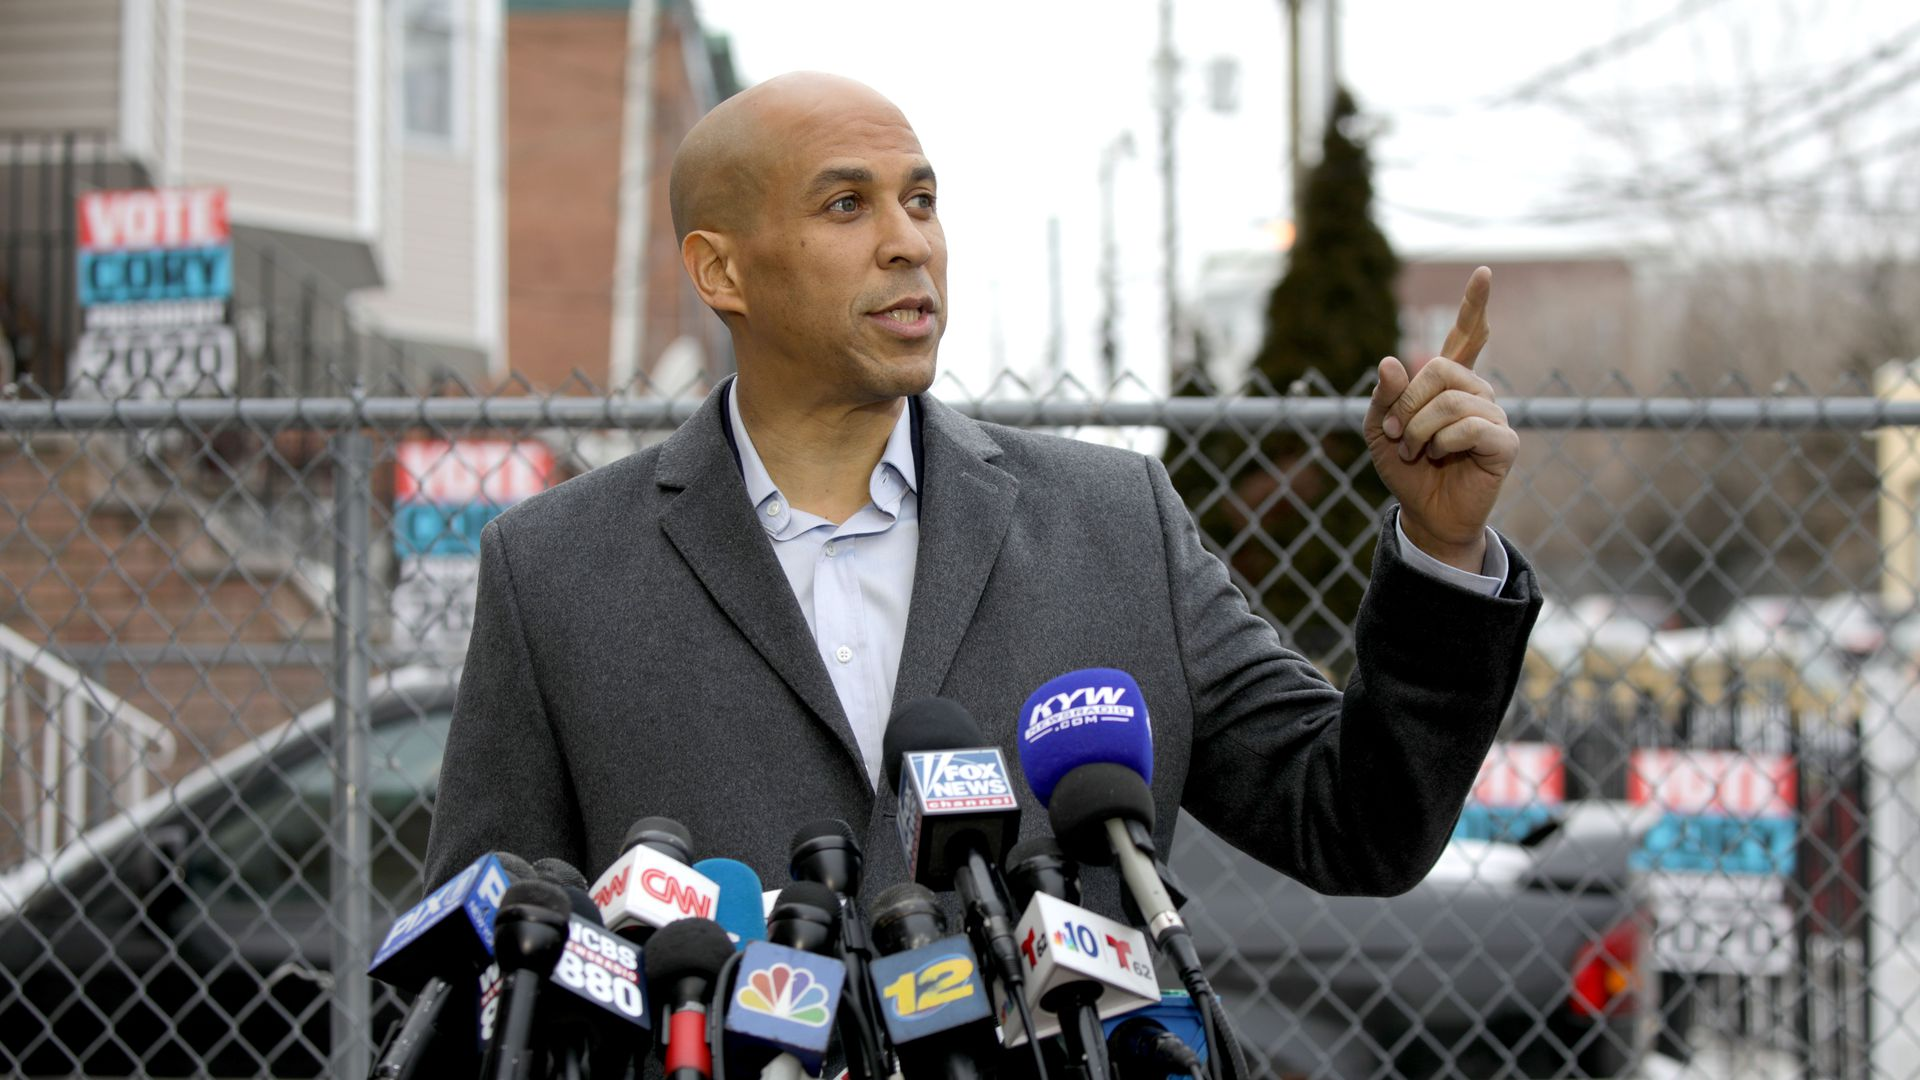 Cory Booker at his 2020 campaign announcement in Newark, N.J.